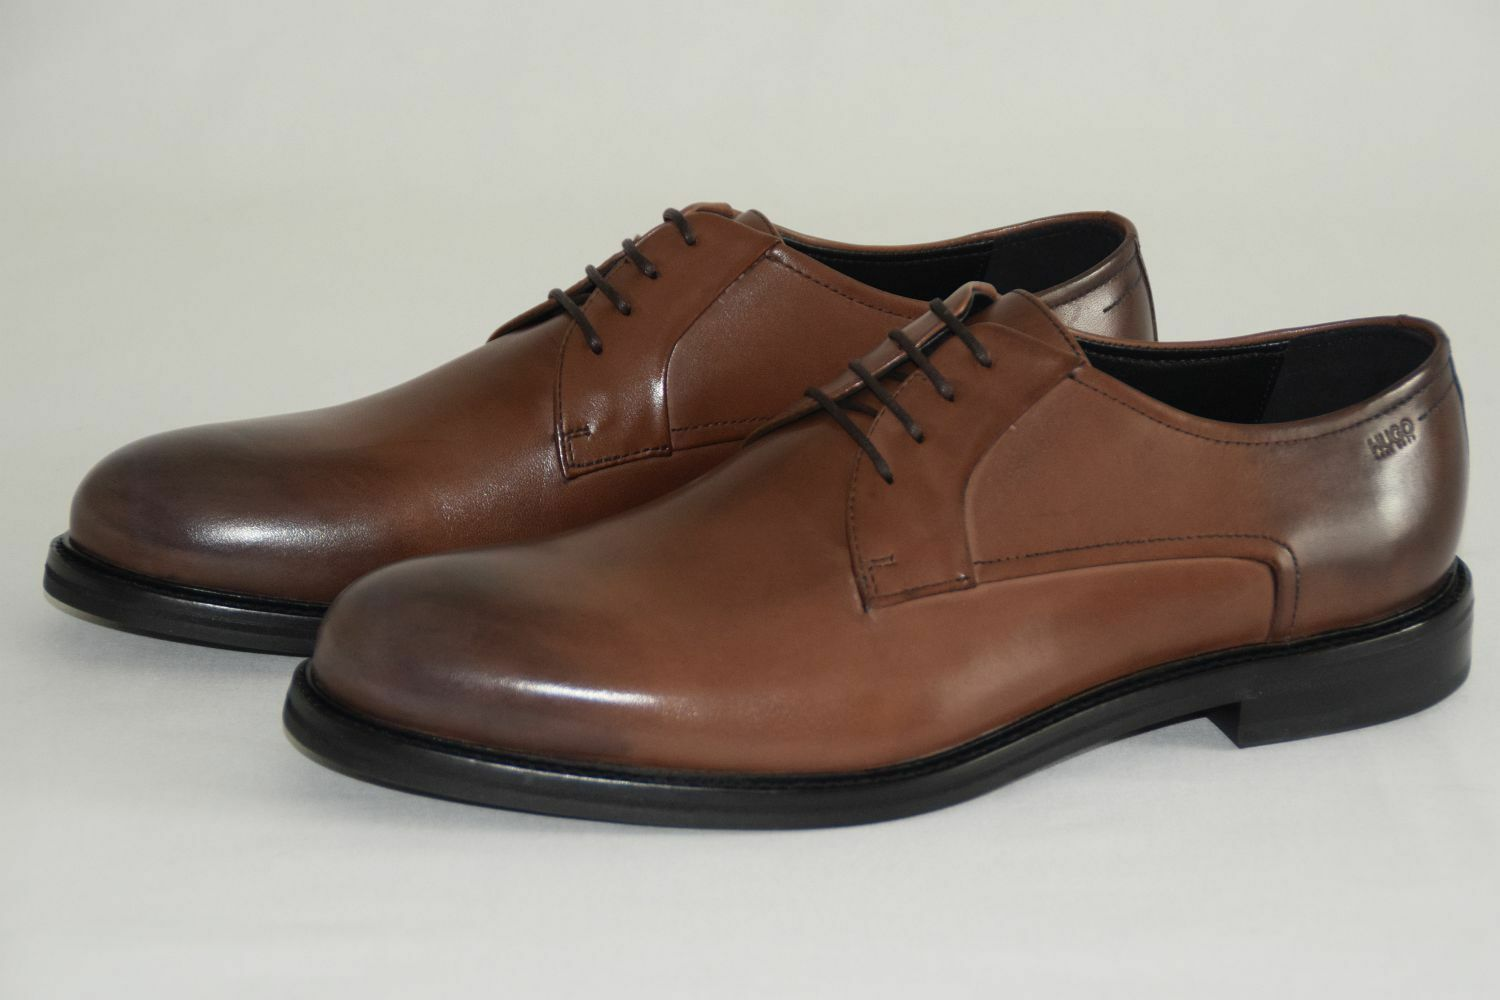 HUGO BOSS BUSINESSSCHUHE, Gr. 9 EU 43 / UK 9 Gr. / US 10,   , Medium Braun 9bf60a